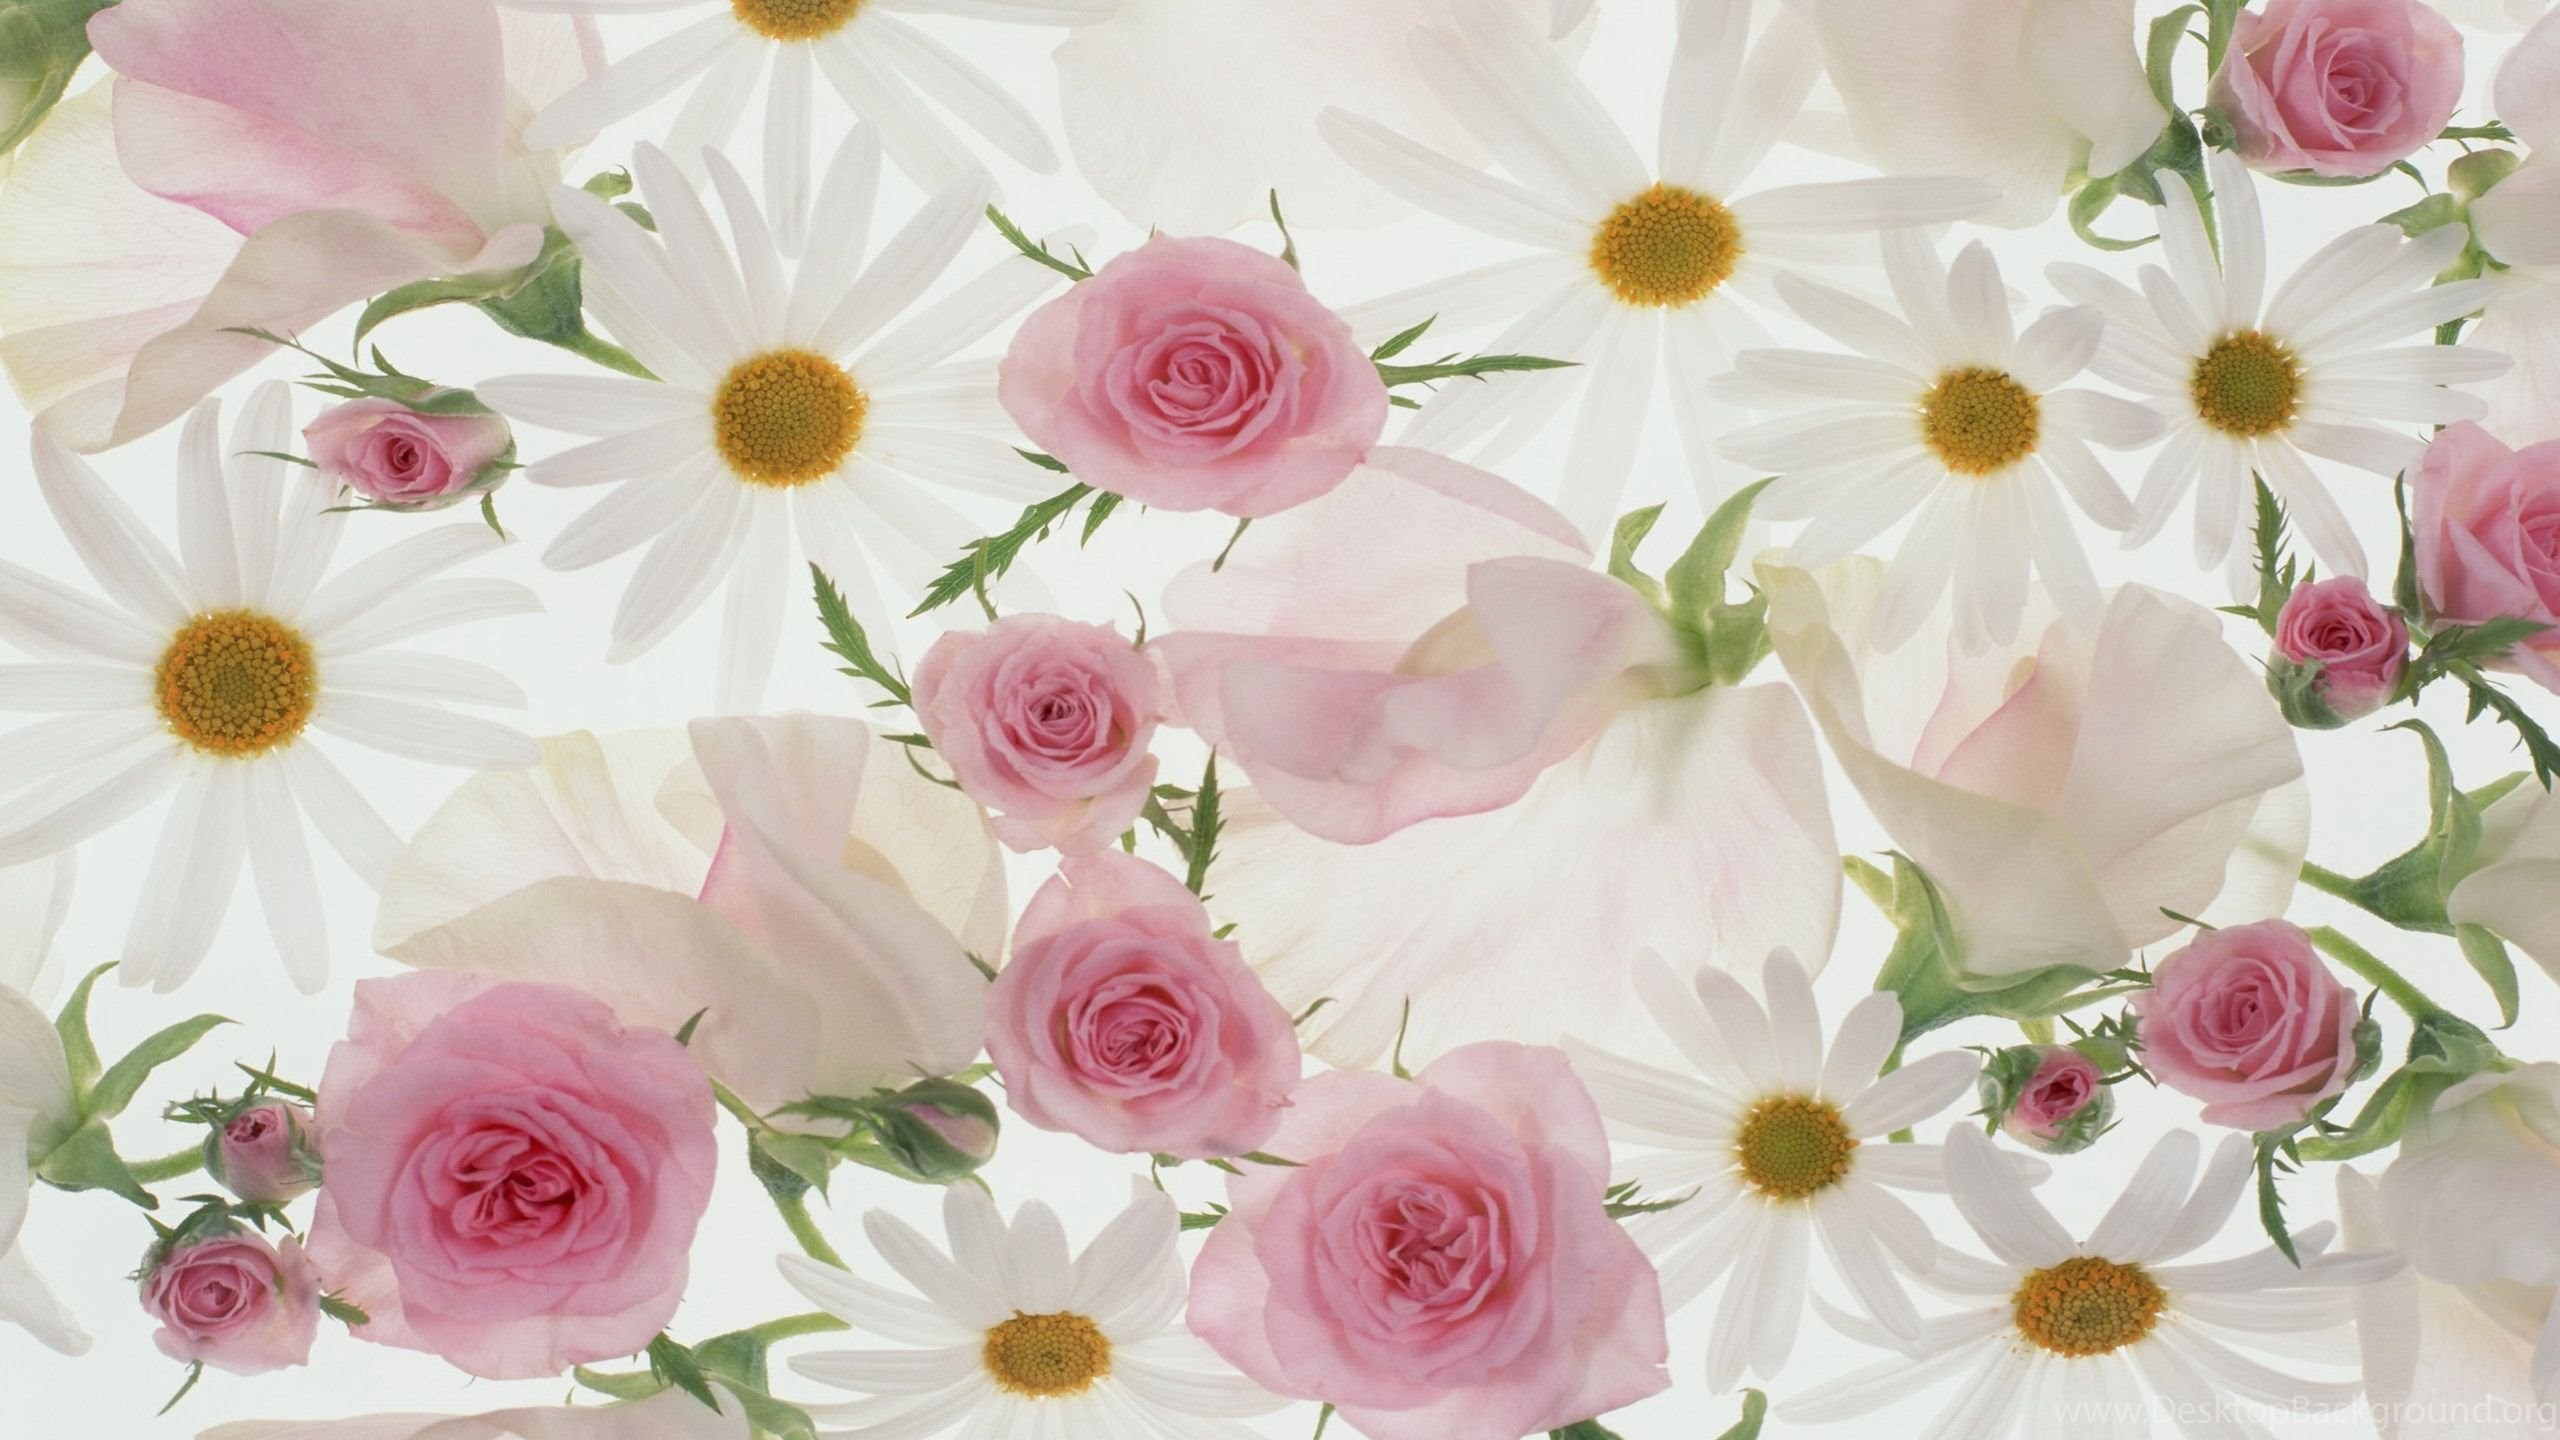 Flowers On Pinterest Desktop Background